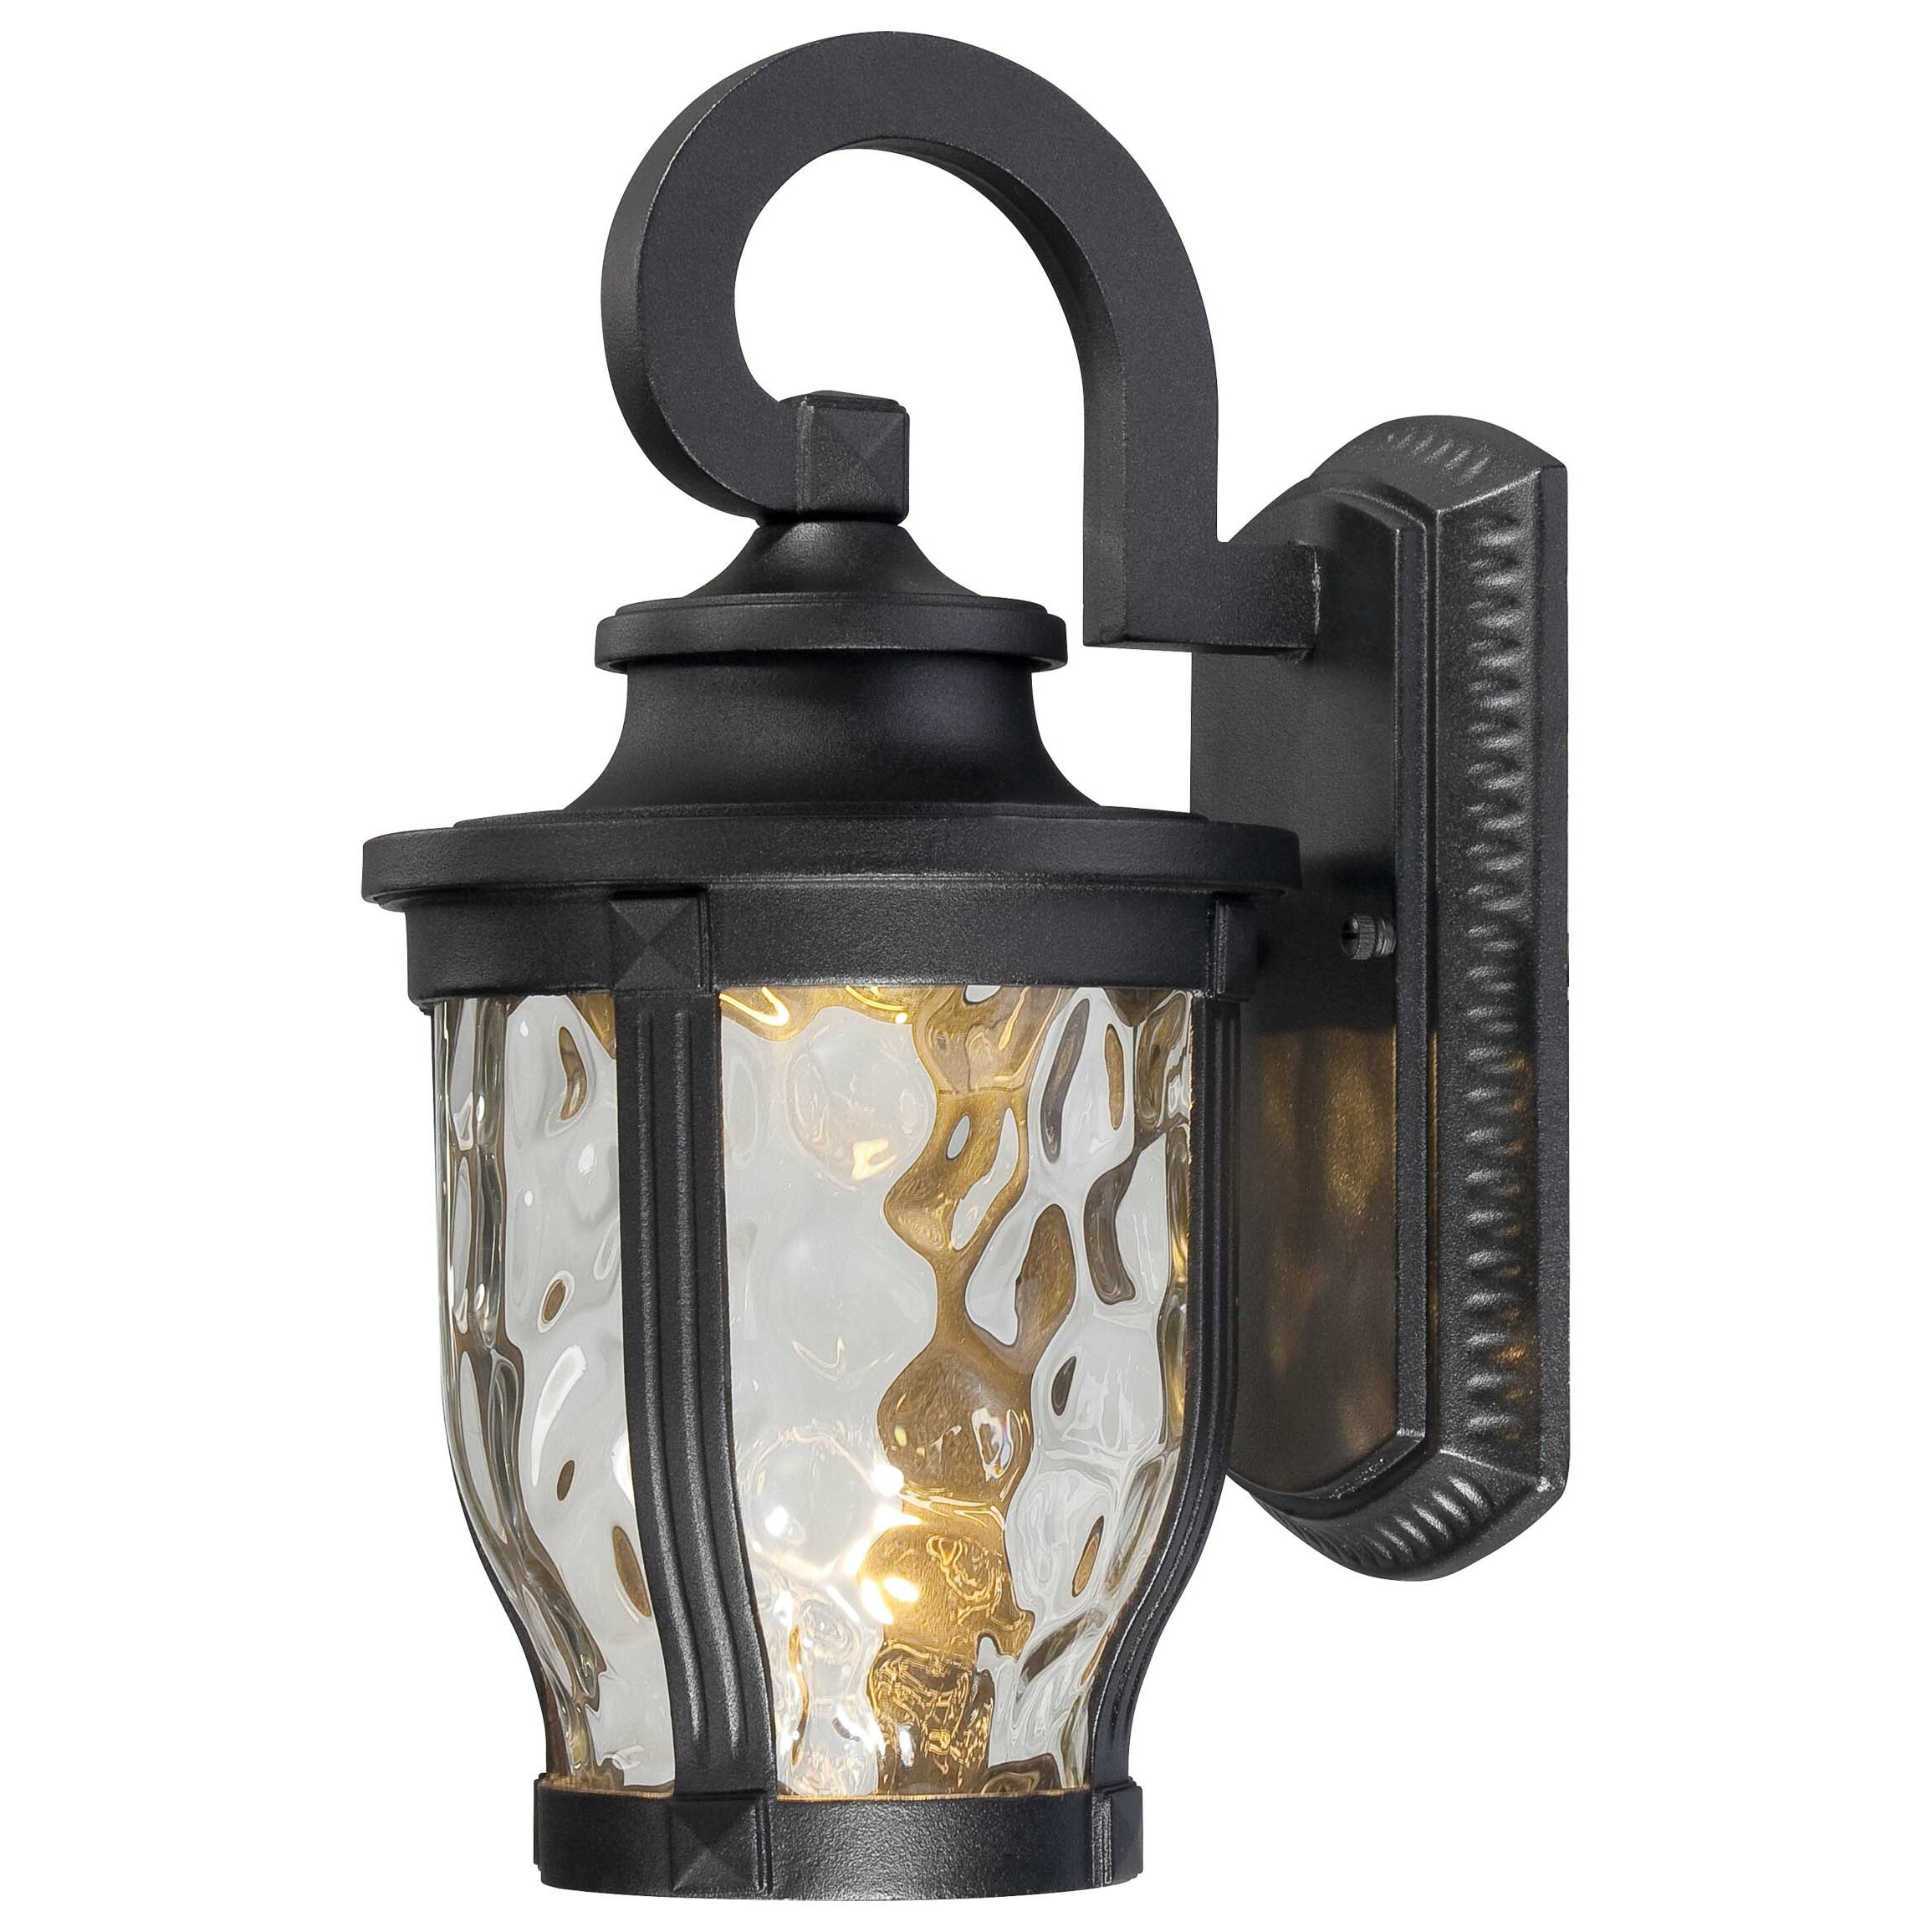 Minka Lavery Merrimack 1 Light Outdoor Wall Lantern Reviews Wayfair